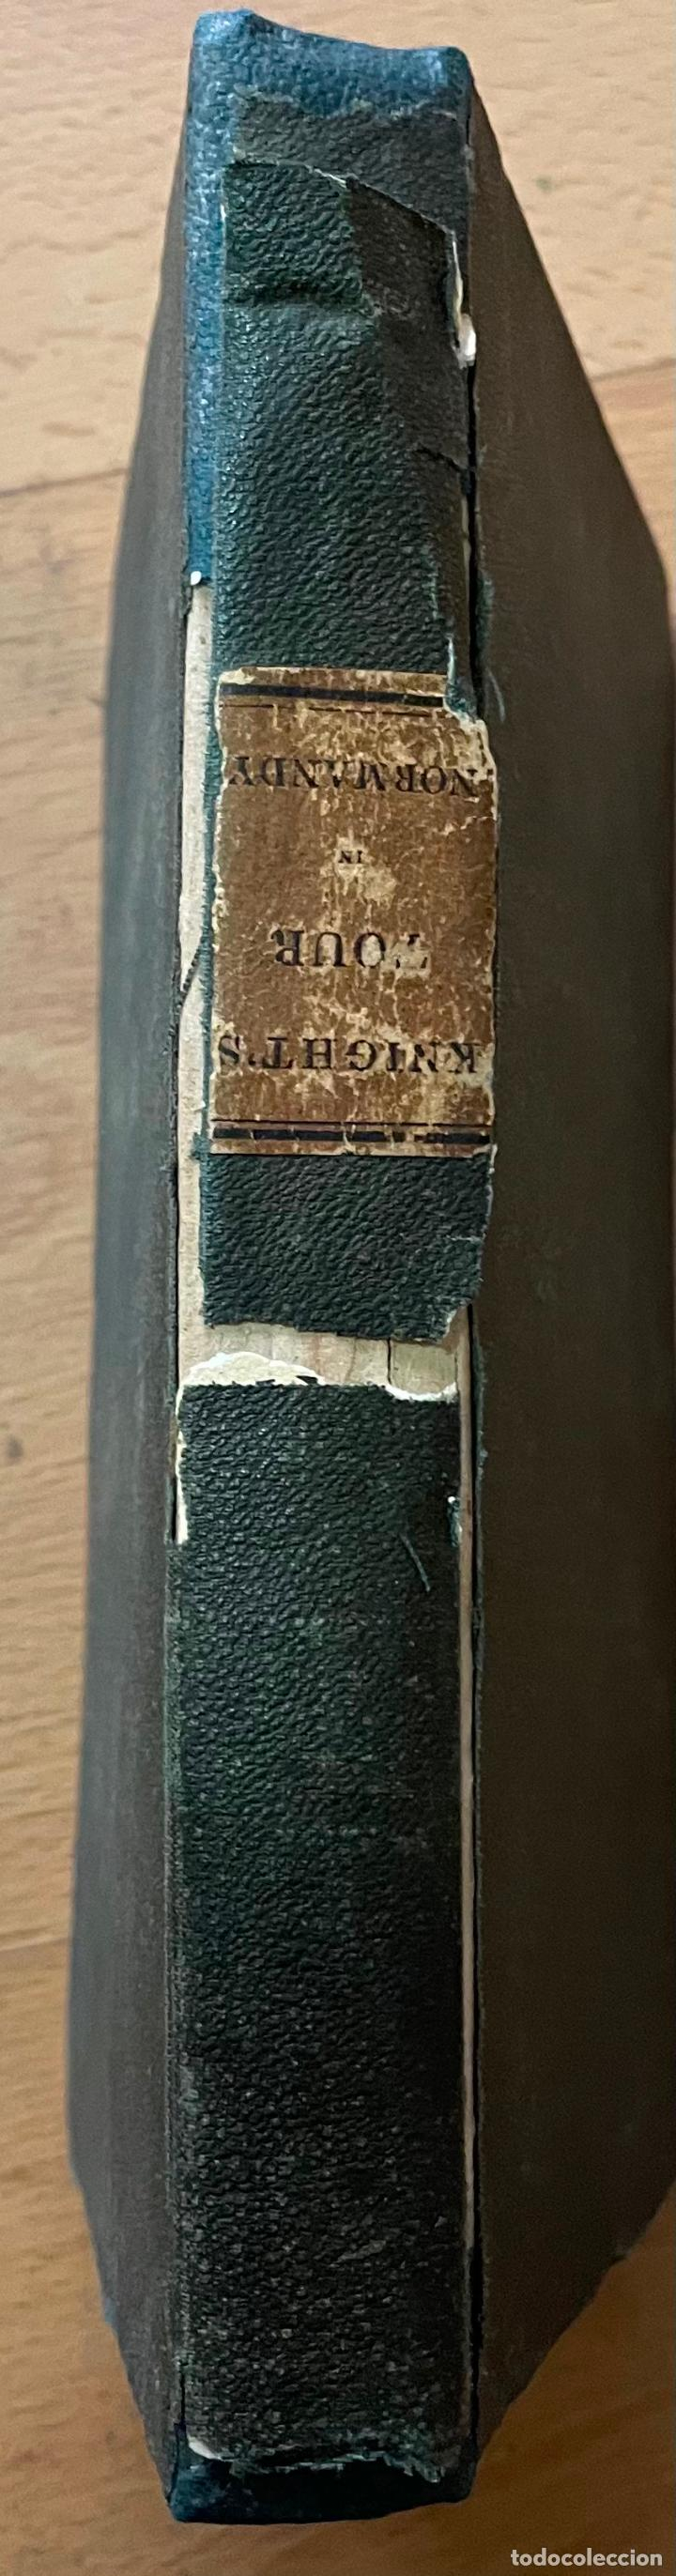 Libros antiguos: AN ARCHITECTURAL TOUR IN NORMANDY, Henry Gally Knight, 1836 - Foto 3 - 255923190